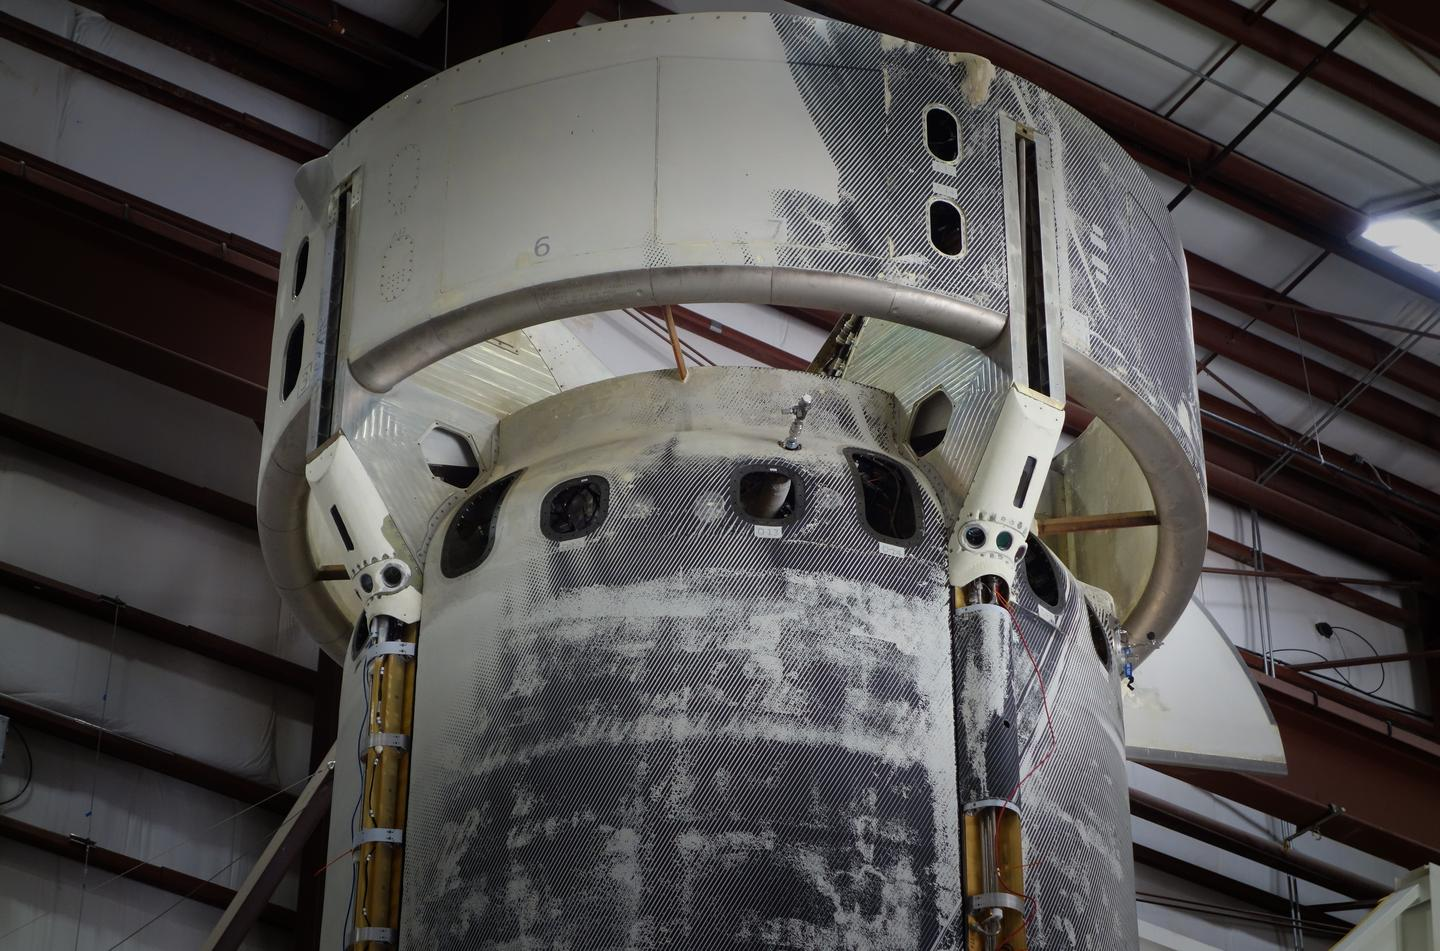 Lunar landing sensors were installed on the upper section of the New Shepard rocket leading up to launch